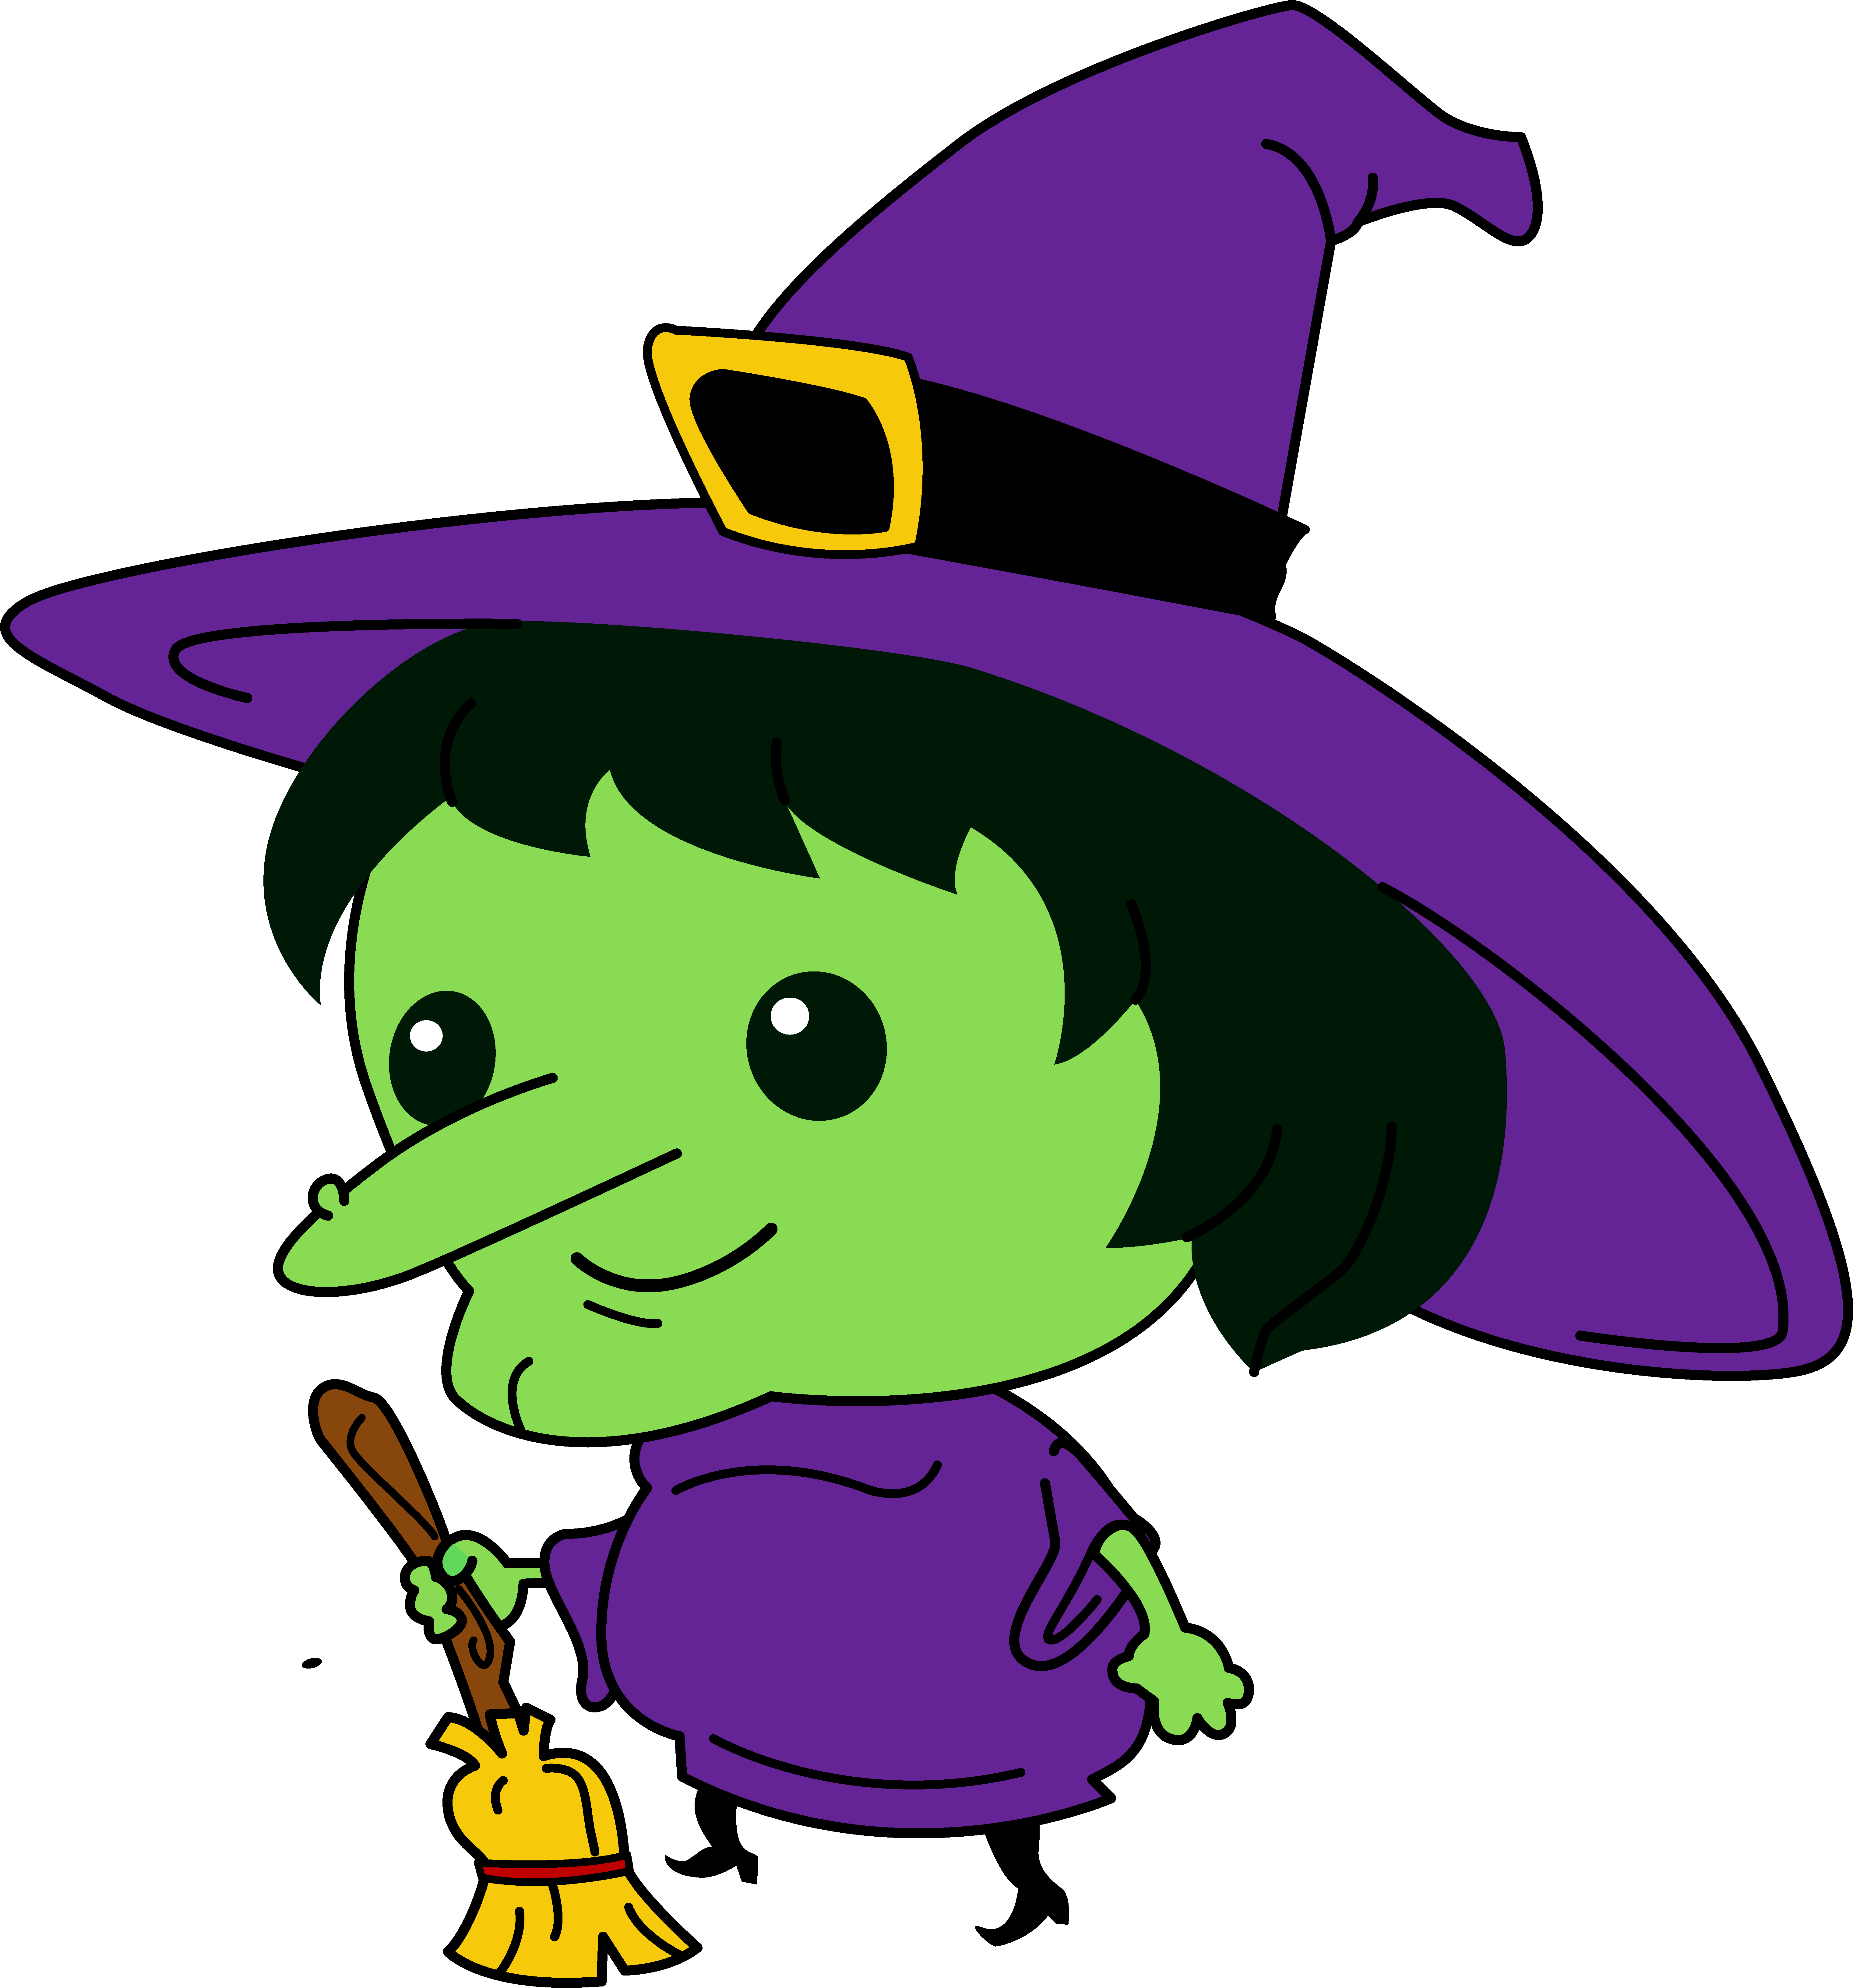 Witch Hat clipart cute owl Images Clip Clip Free Free